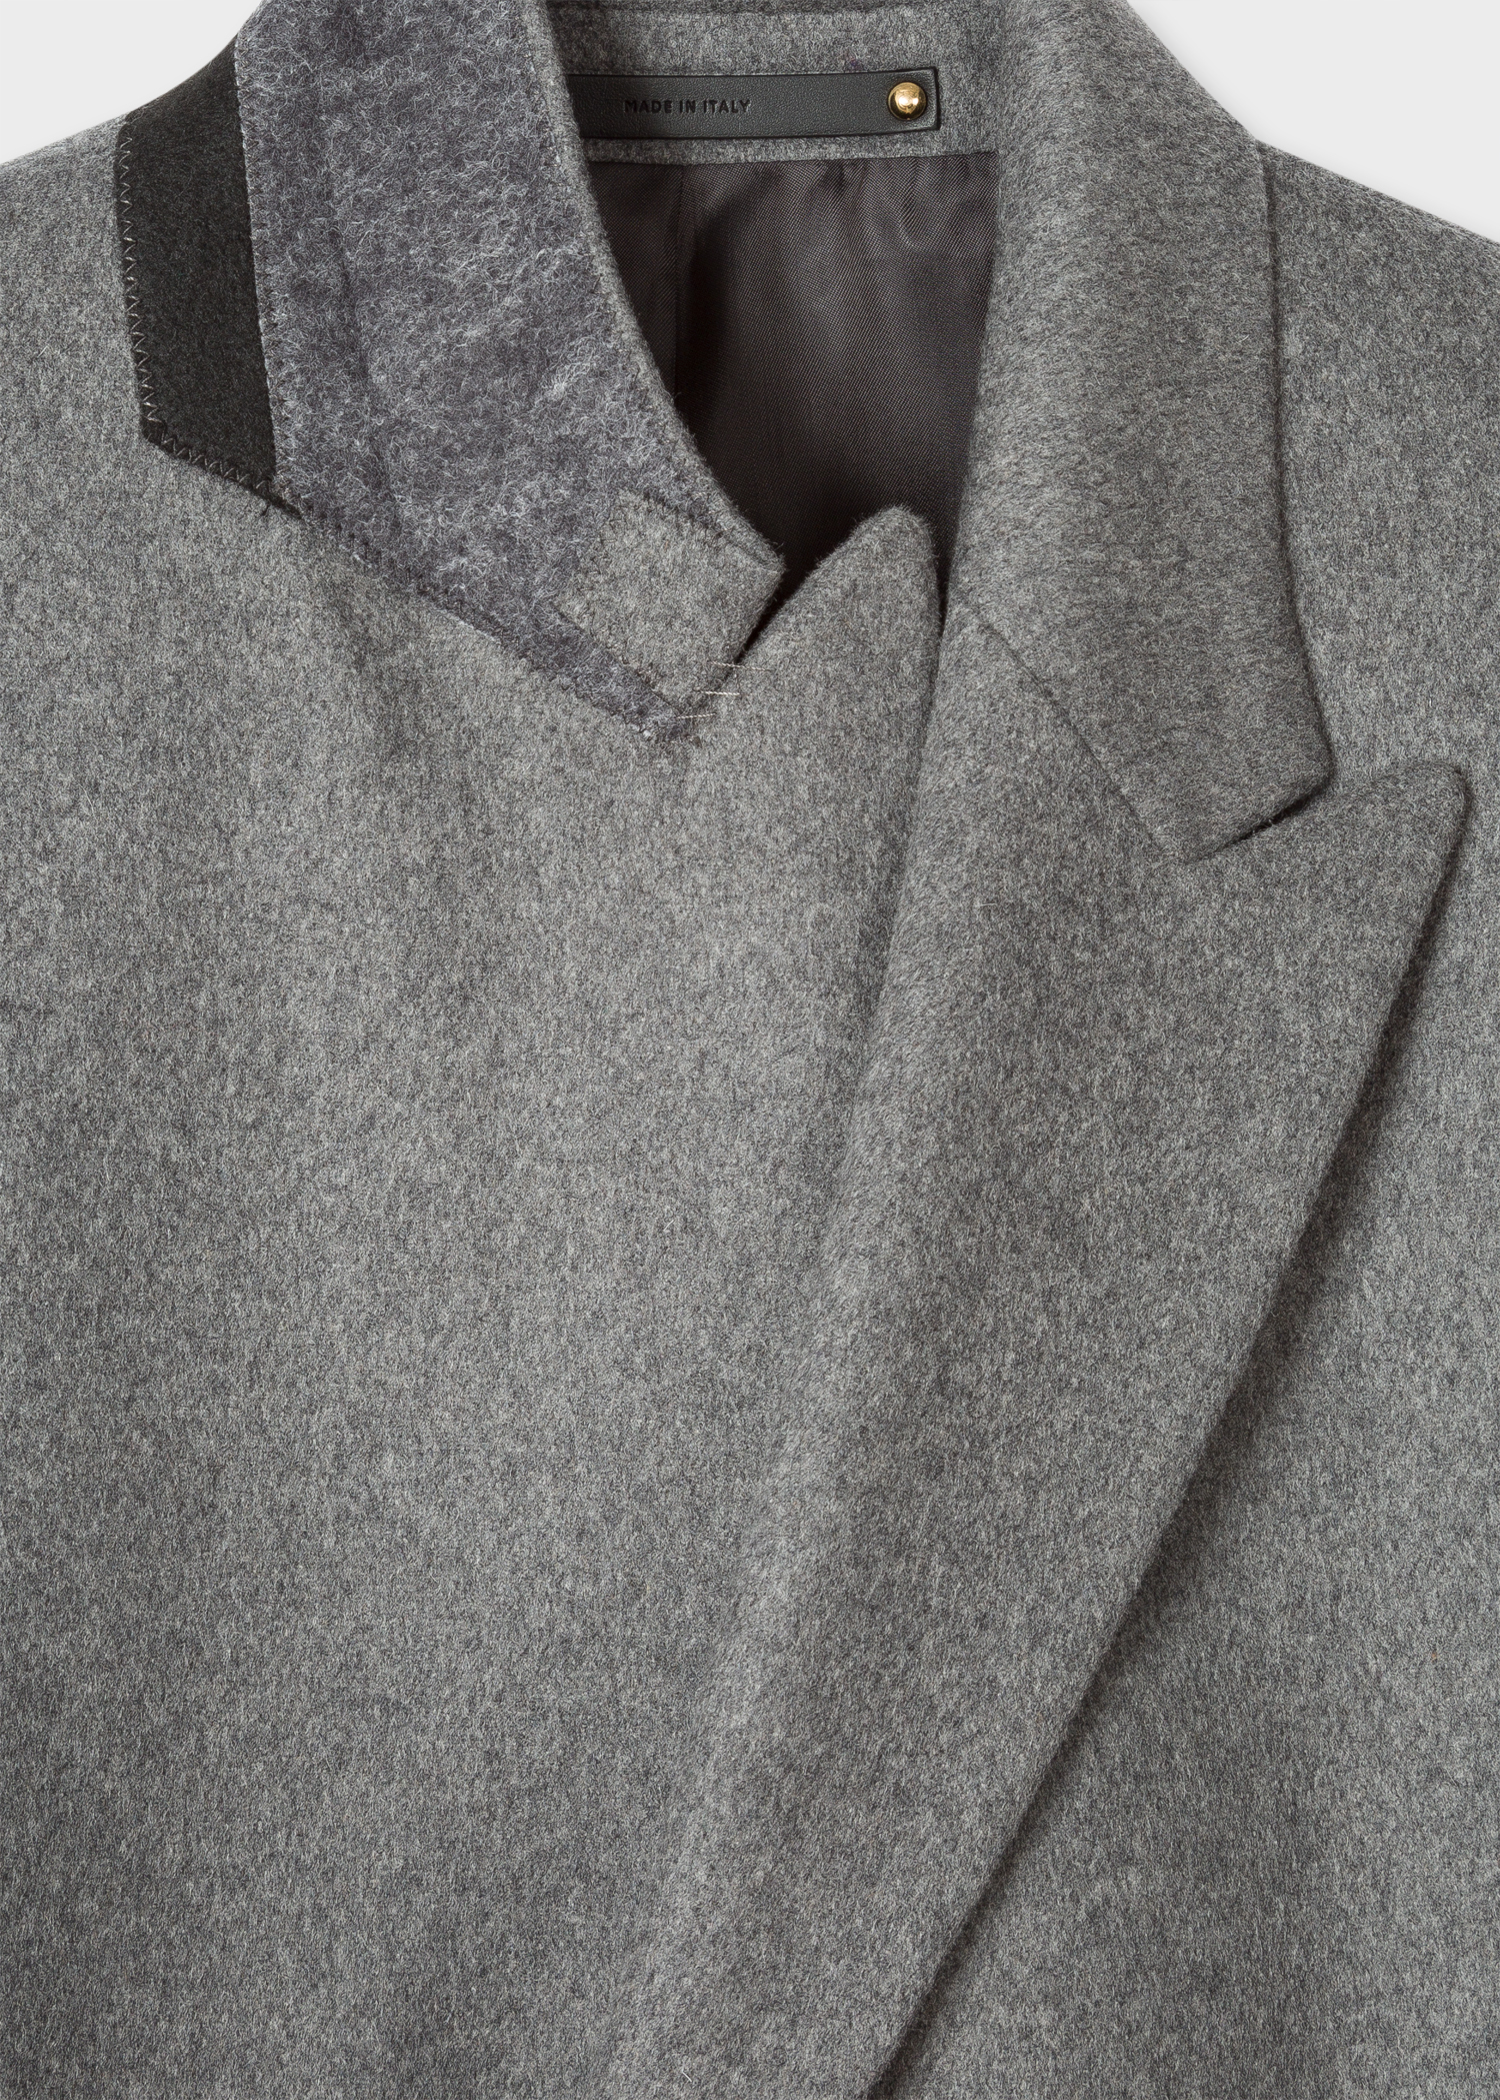 Men S Light Grey Cashmere Blend Peak Lapel Epsom Coat